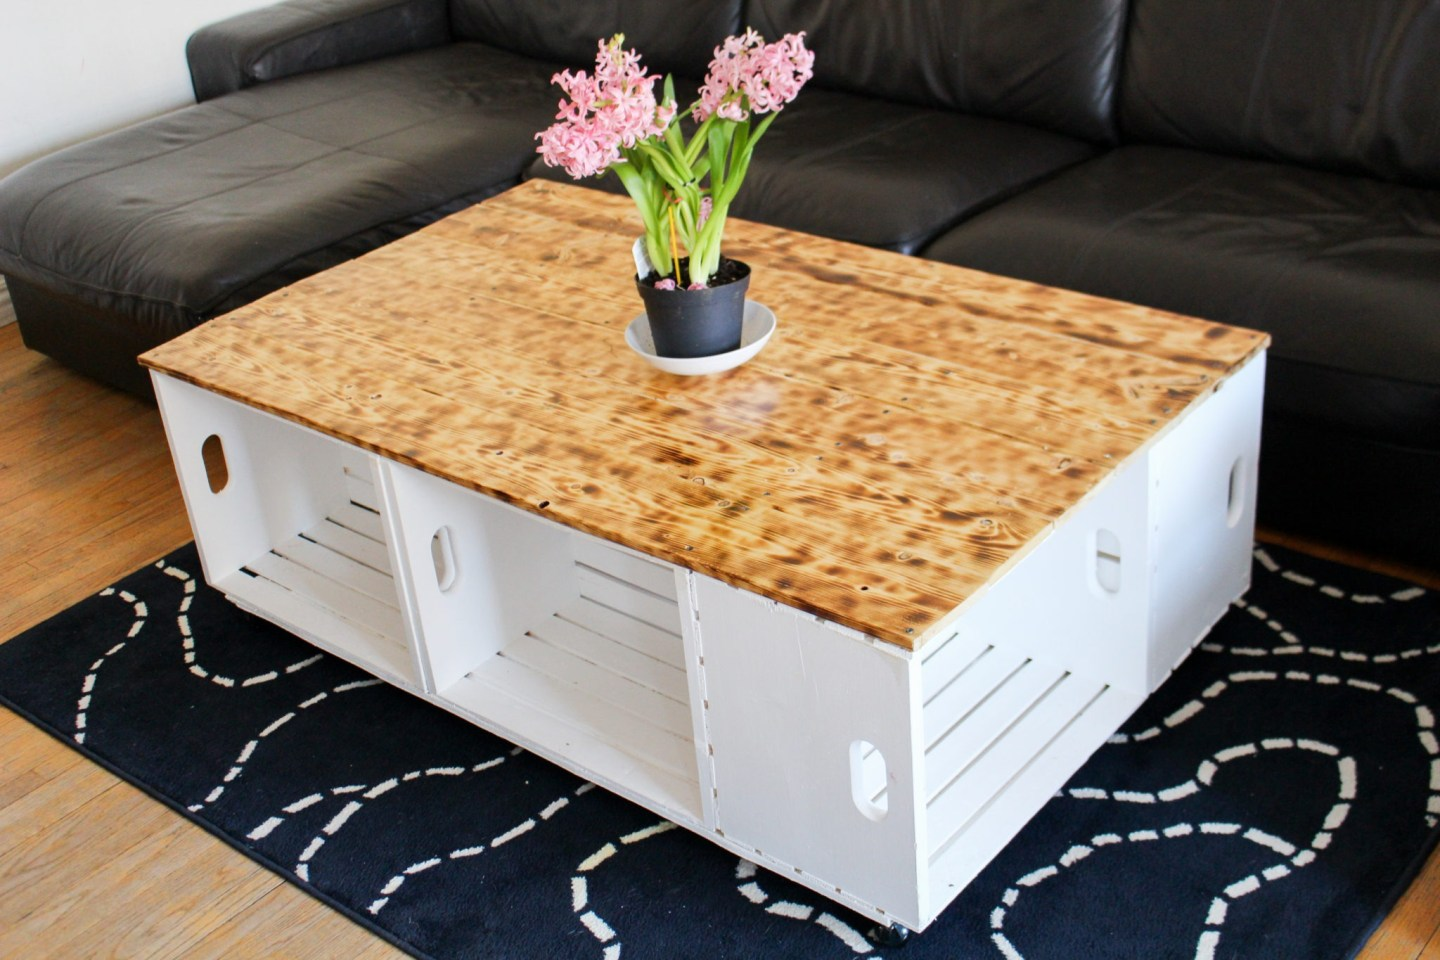 DIY Wood Crate Coffee Table with Burnt Wood Top